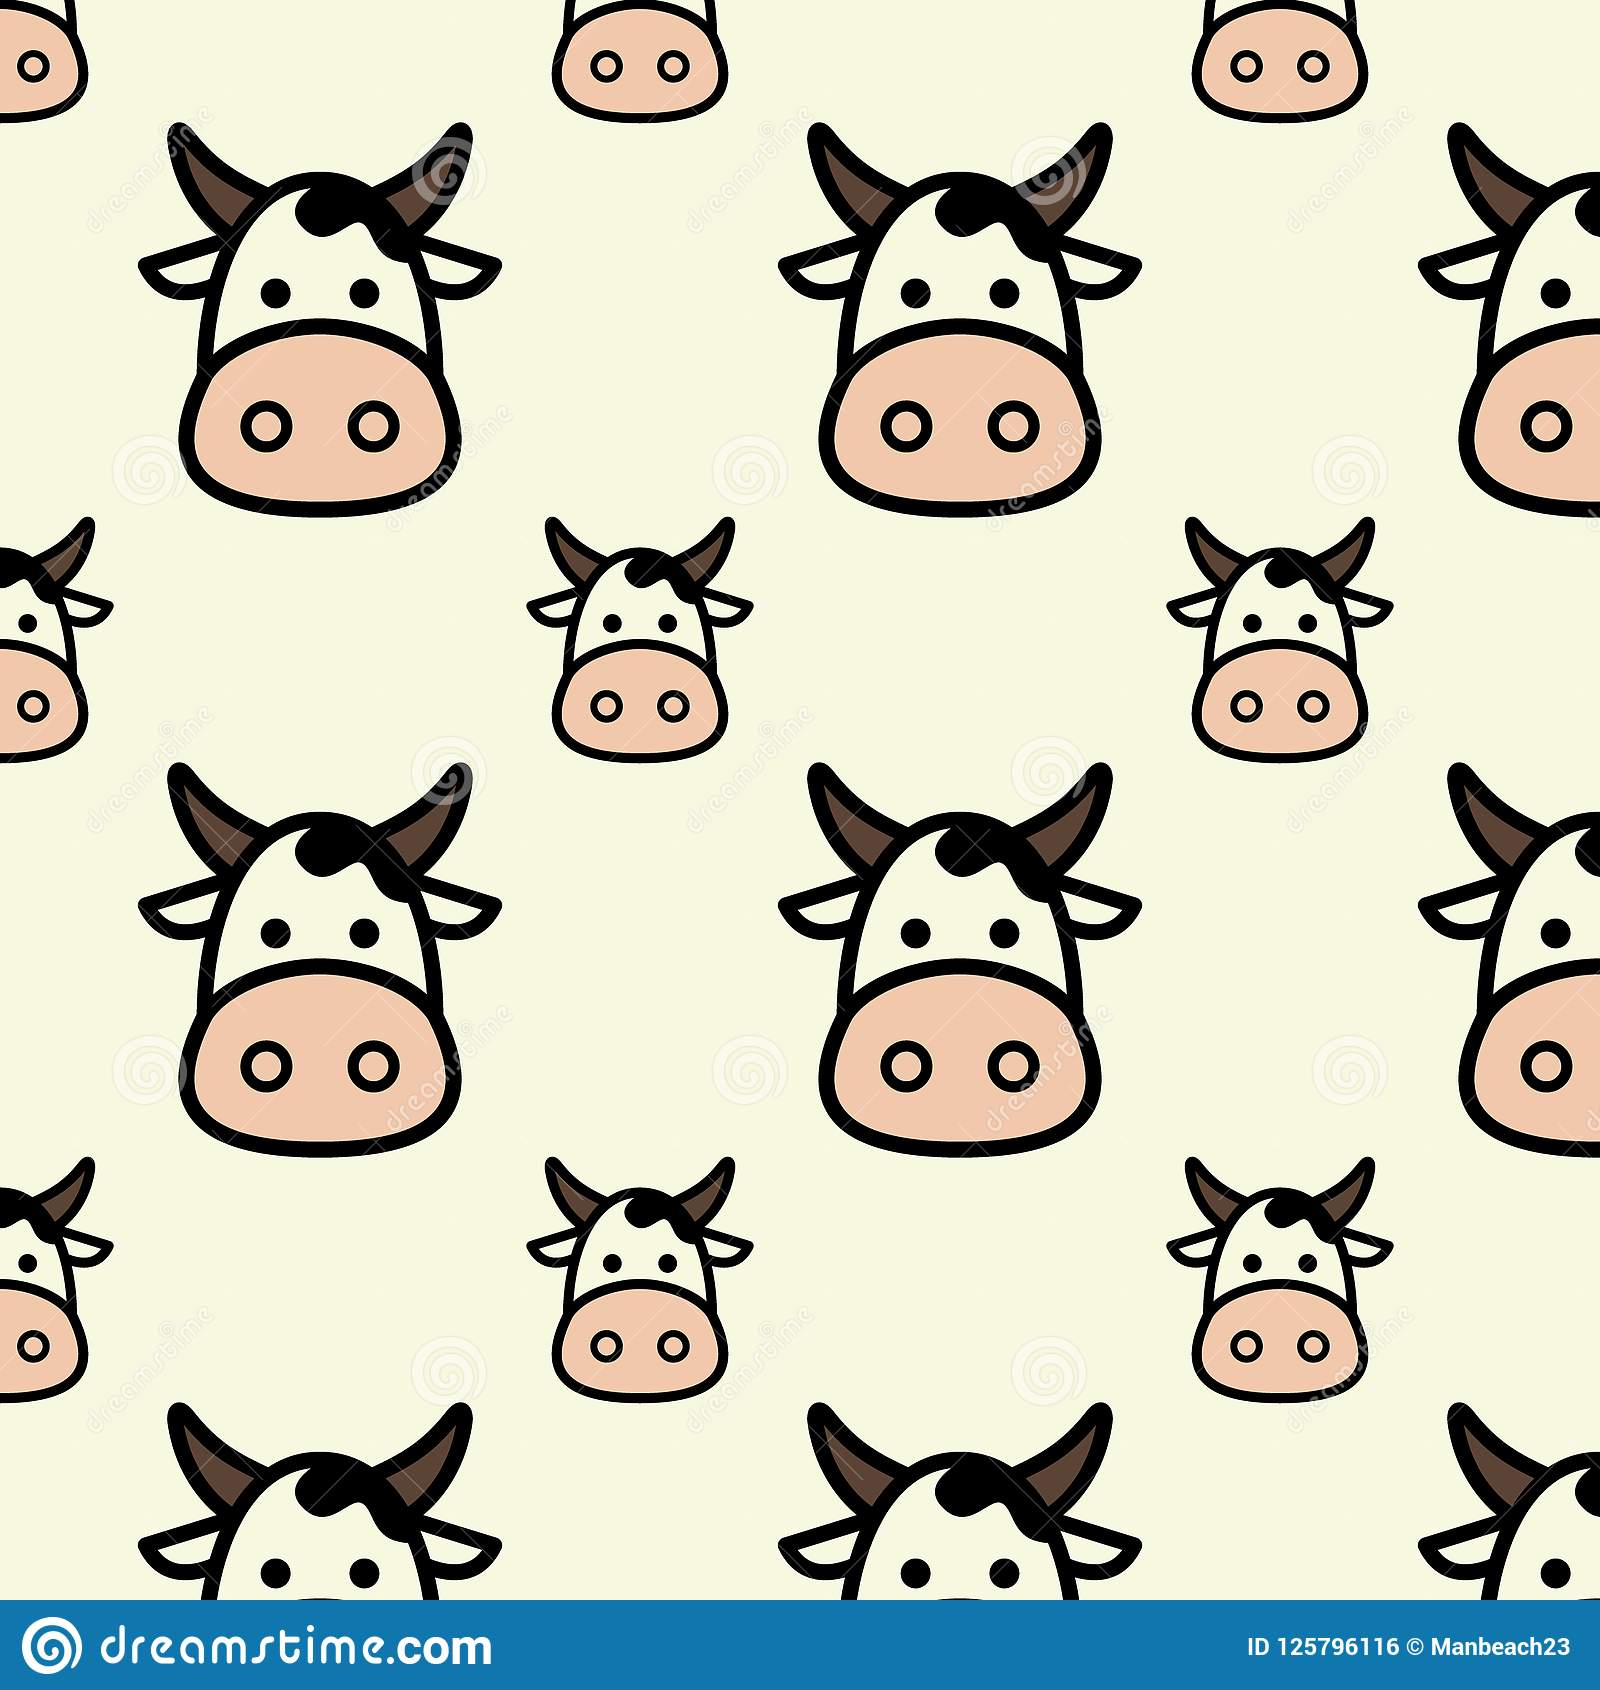 Flat Design Cute Head Cow Cartoon Seamless Pattern For Background And Wallpaper Stock Vector Illustration Of Greeting Fortune 125796116